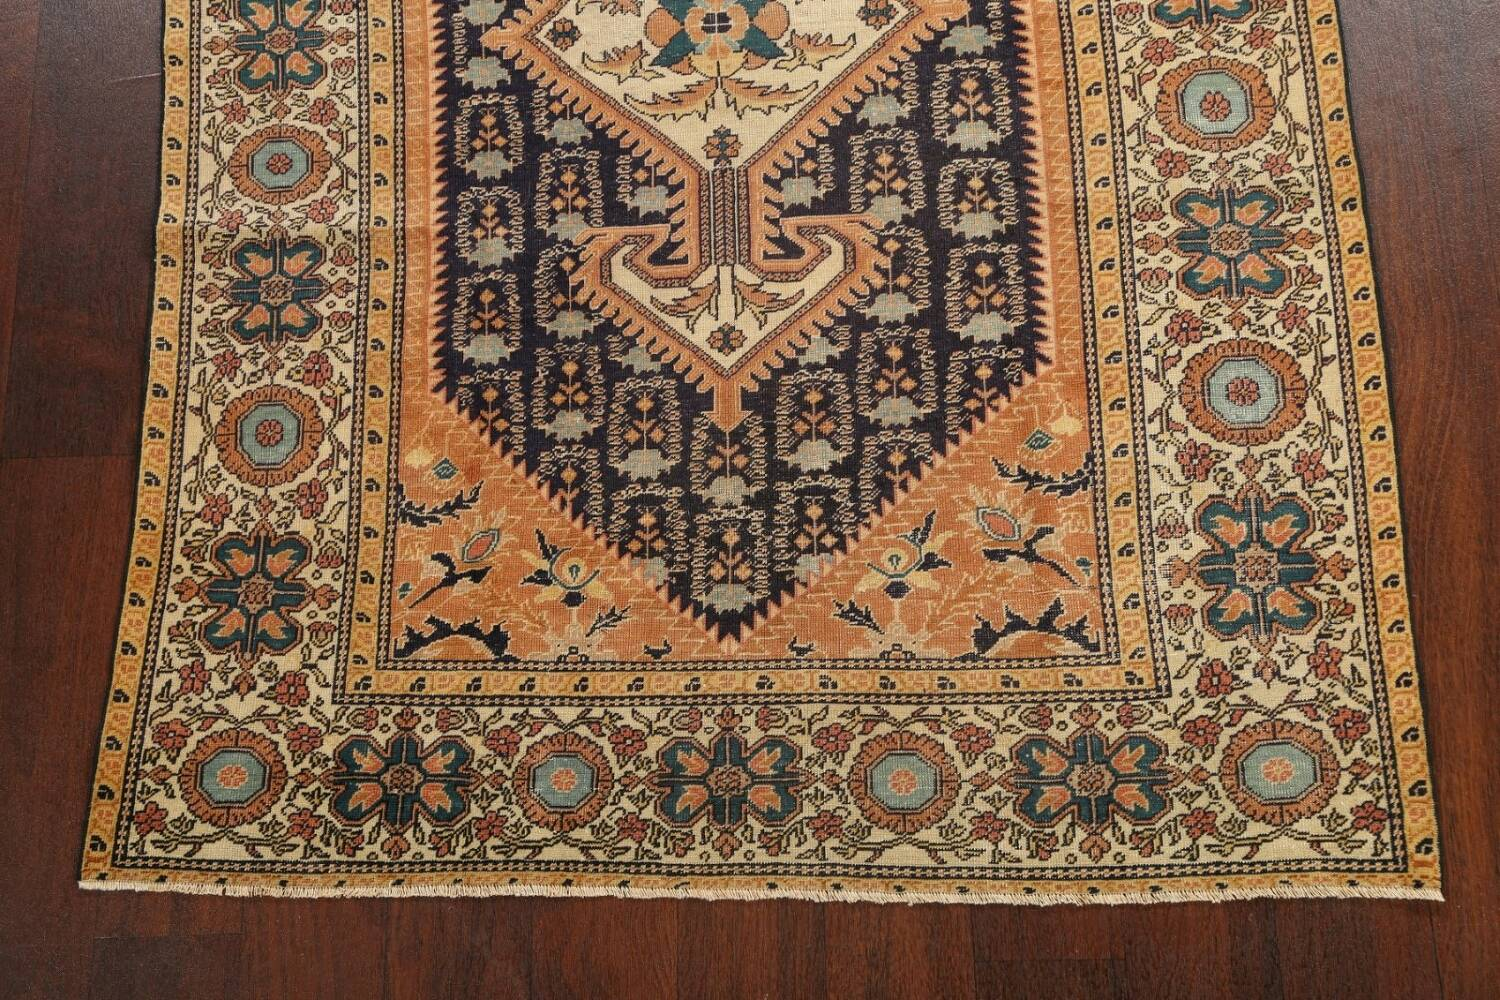 Antique 100% Vegetable Dye Sultanabad Persian Area Rug 4x5 image 8